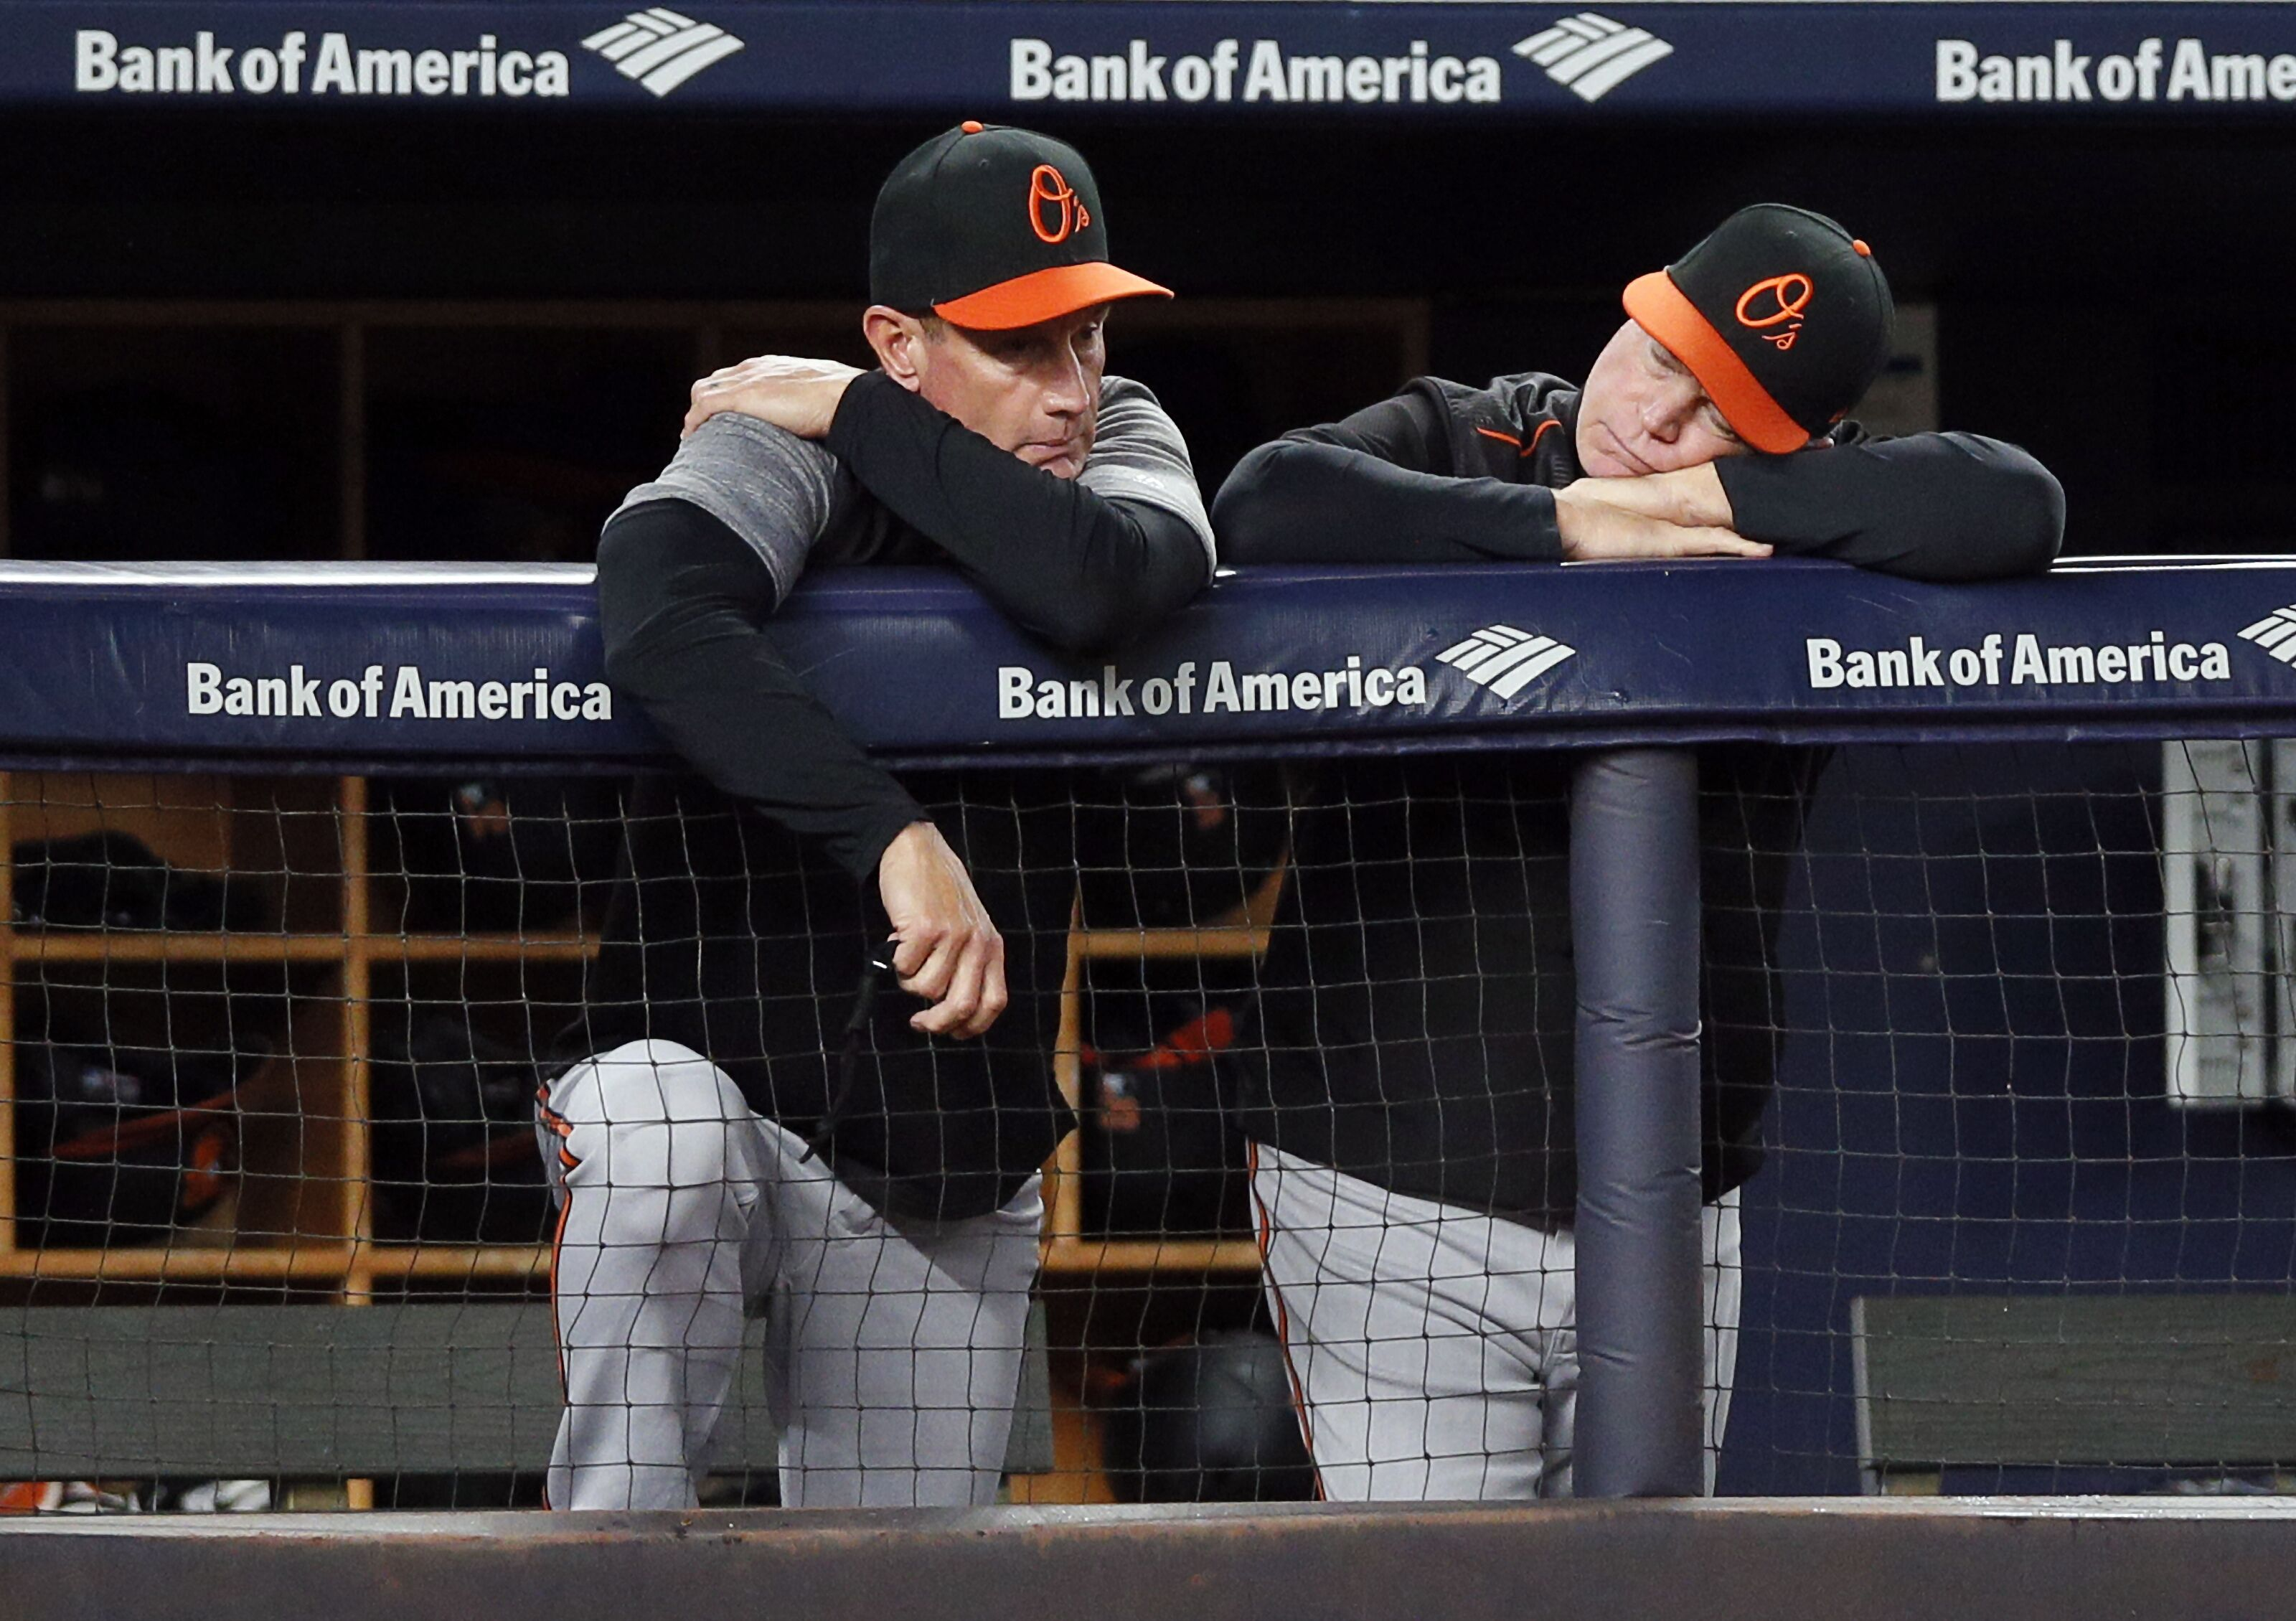 Why the Baltimore Orioles are not beyond hope